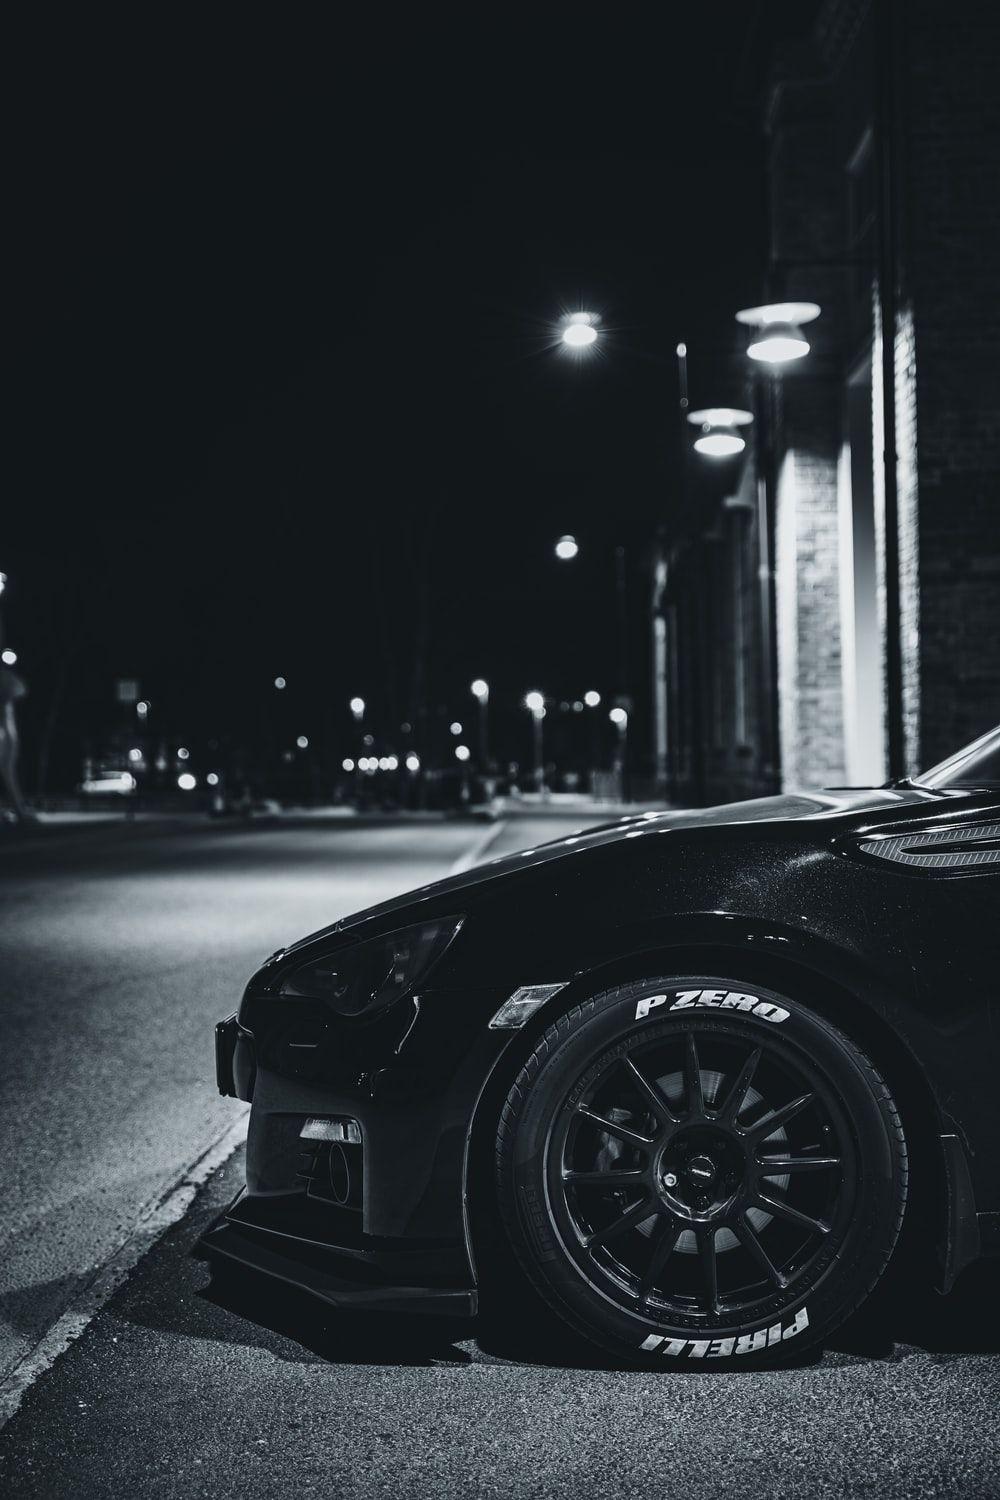 black car on road in grayscale photography